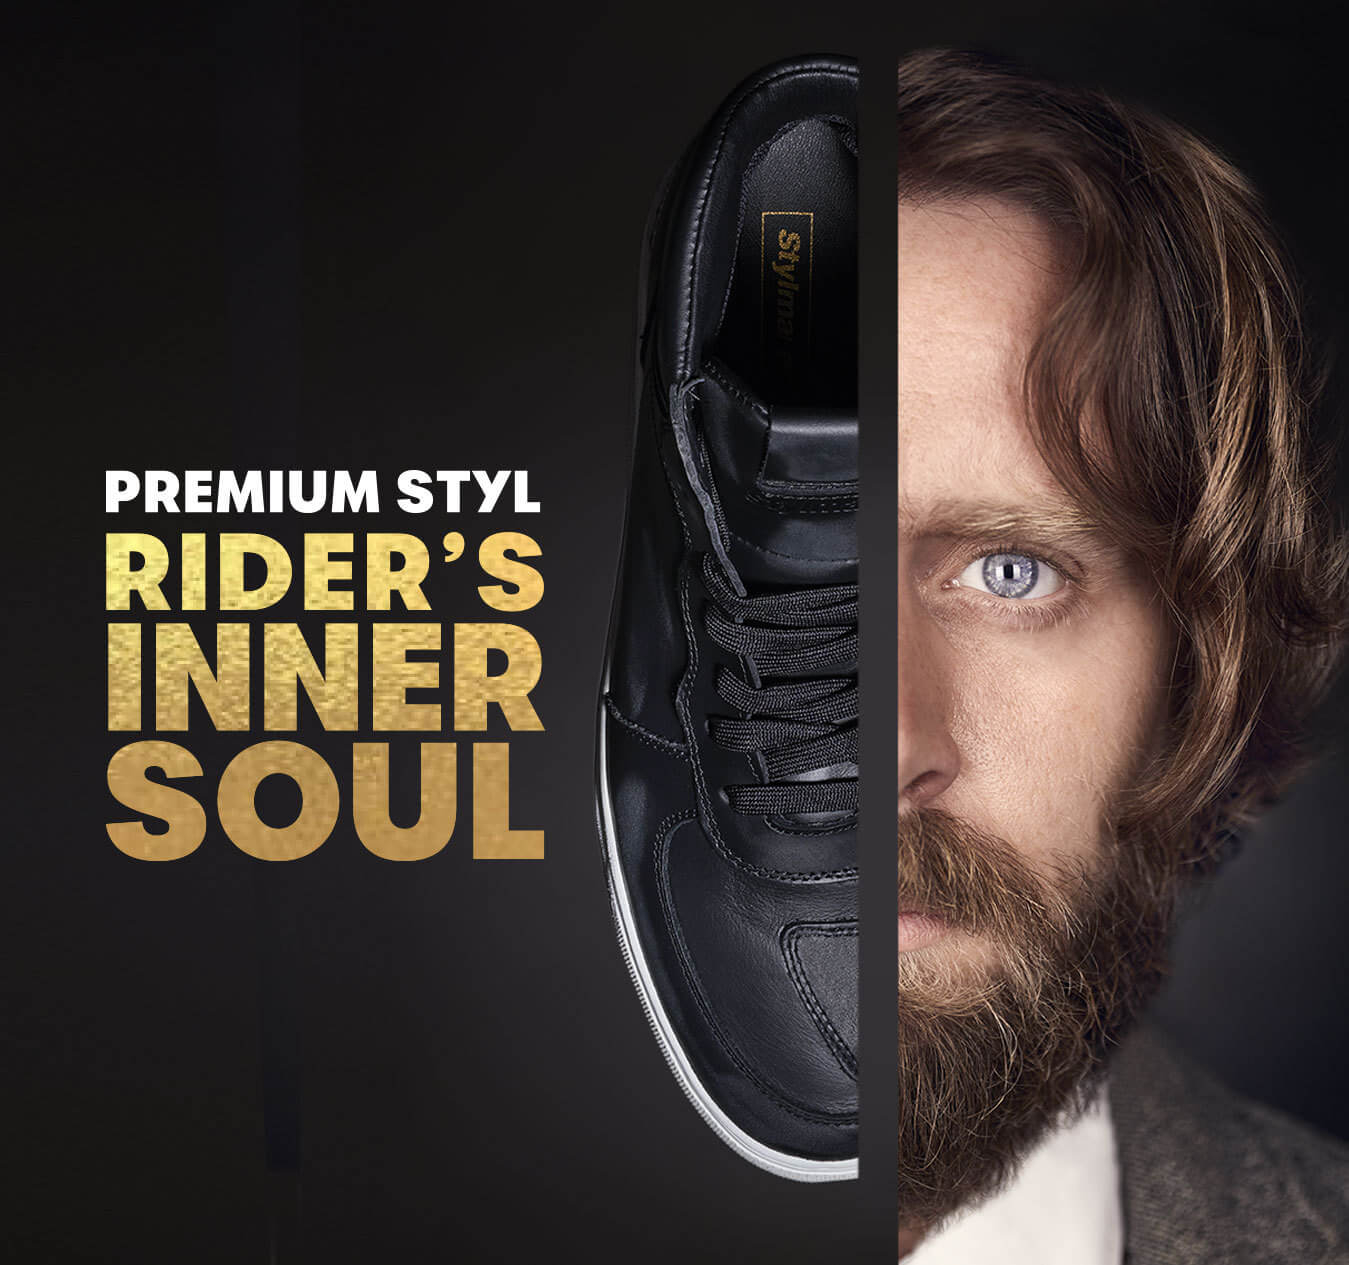 Venice LTD Premium Styl waterproof sneakers: Rider's Inner Soul. Stefano, when passion vibrates deep inside you.